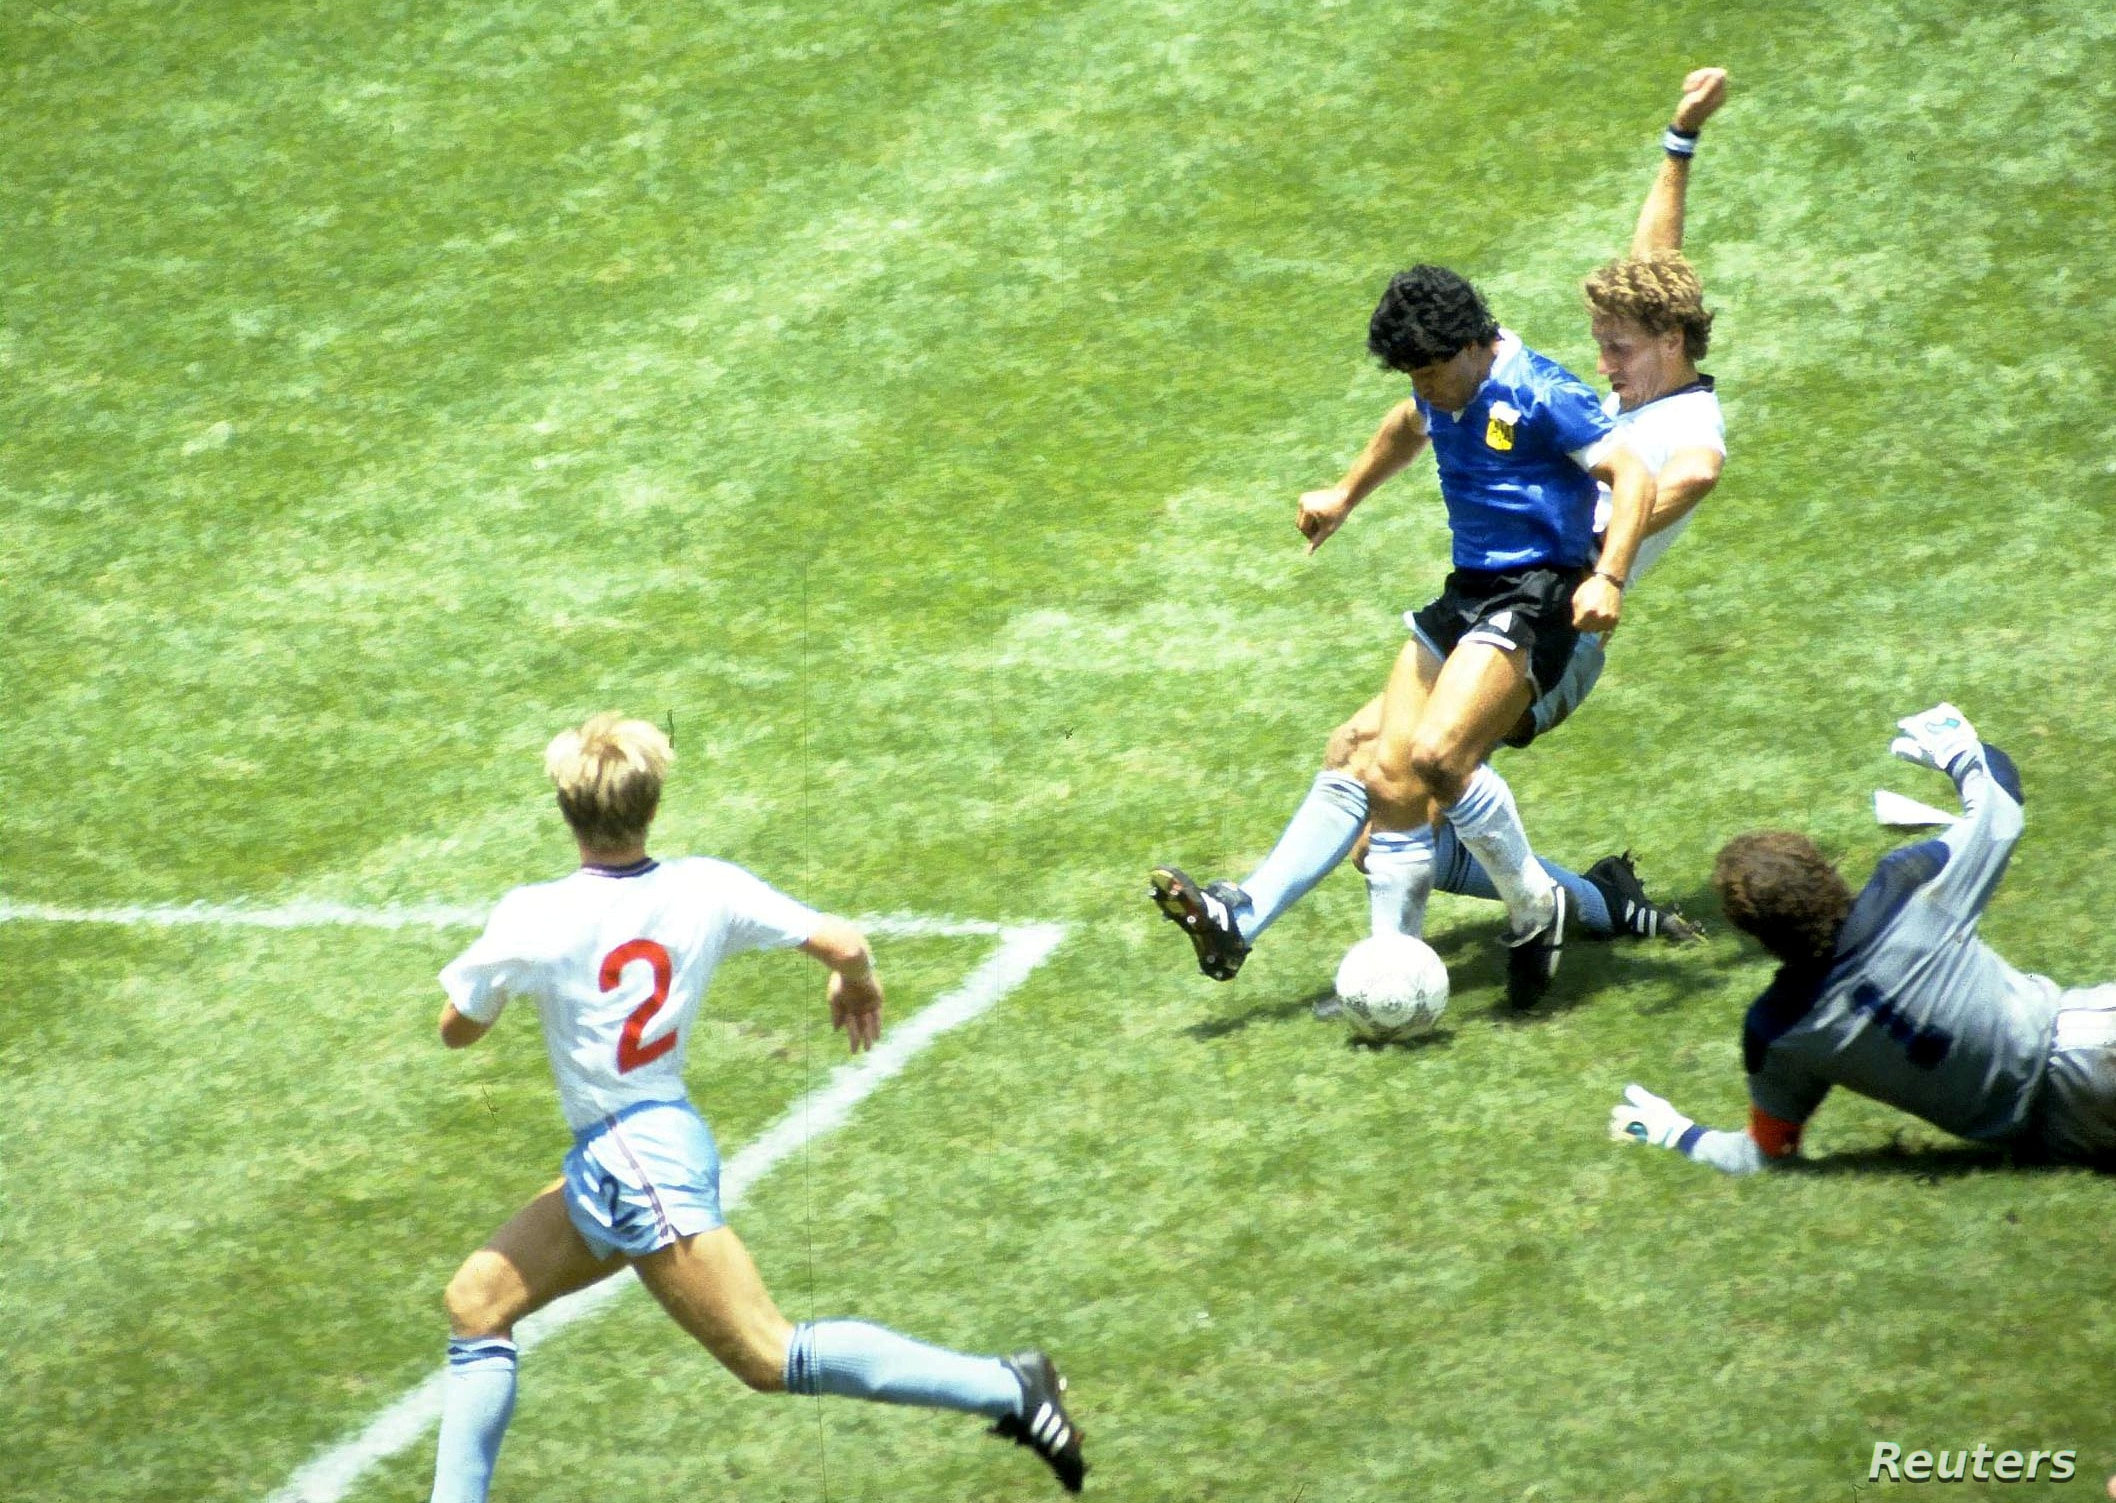 Diego Maradona S Career Had Its Share Of Highs Lows Voice Of America English